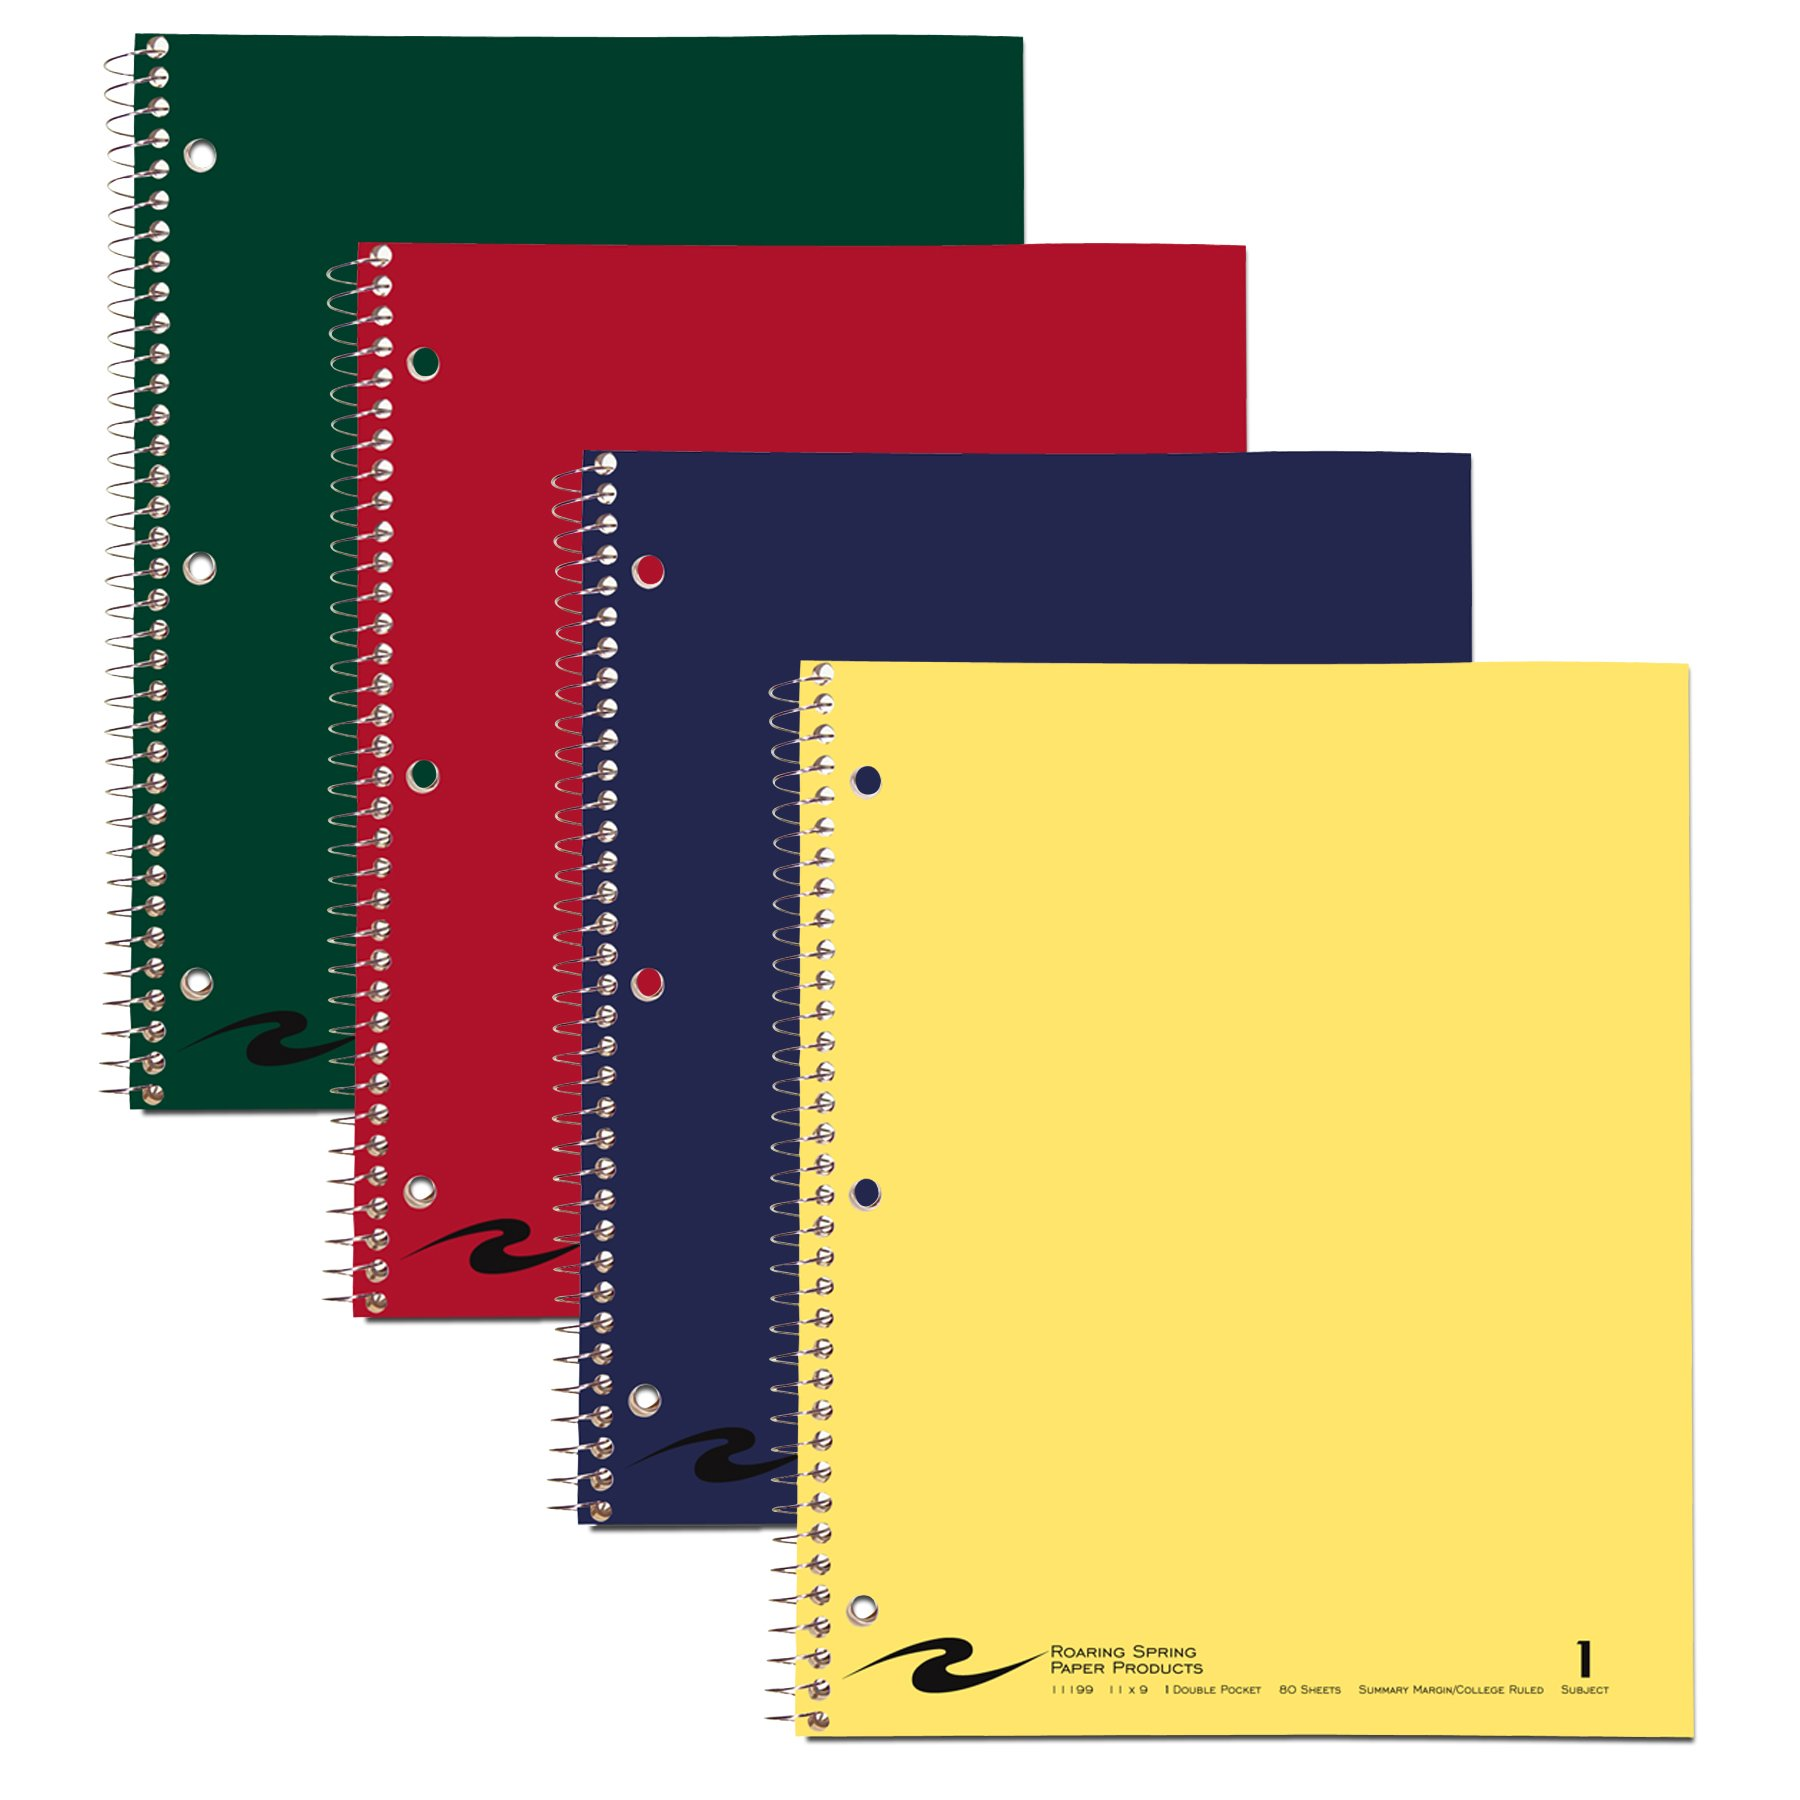 Case of 24 One Subject Notebooks, 11''x9'', 80 sheets of 15# White Paper, law Ruled, Perforated, Assorted Color covers by Roaring Spring (Image #2)